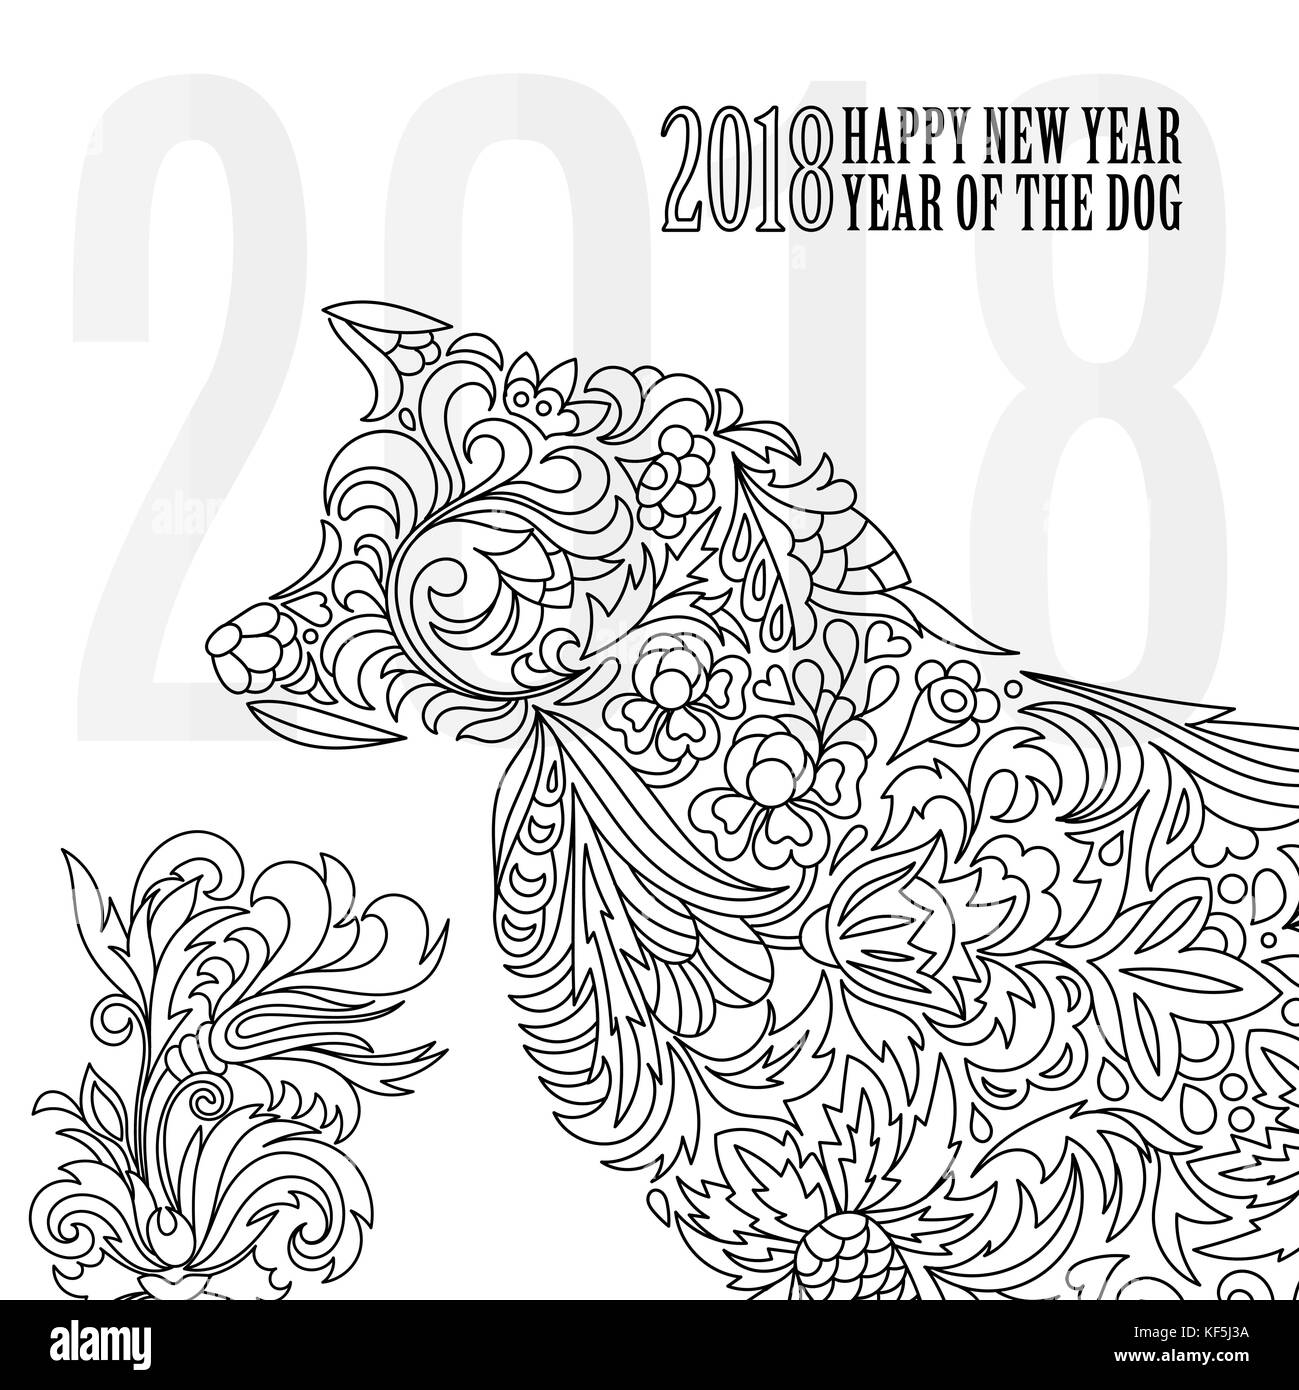 greeting chinese new year card with stylized dog one color print vector illustration